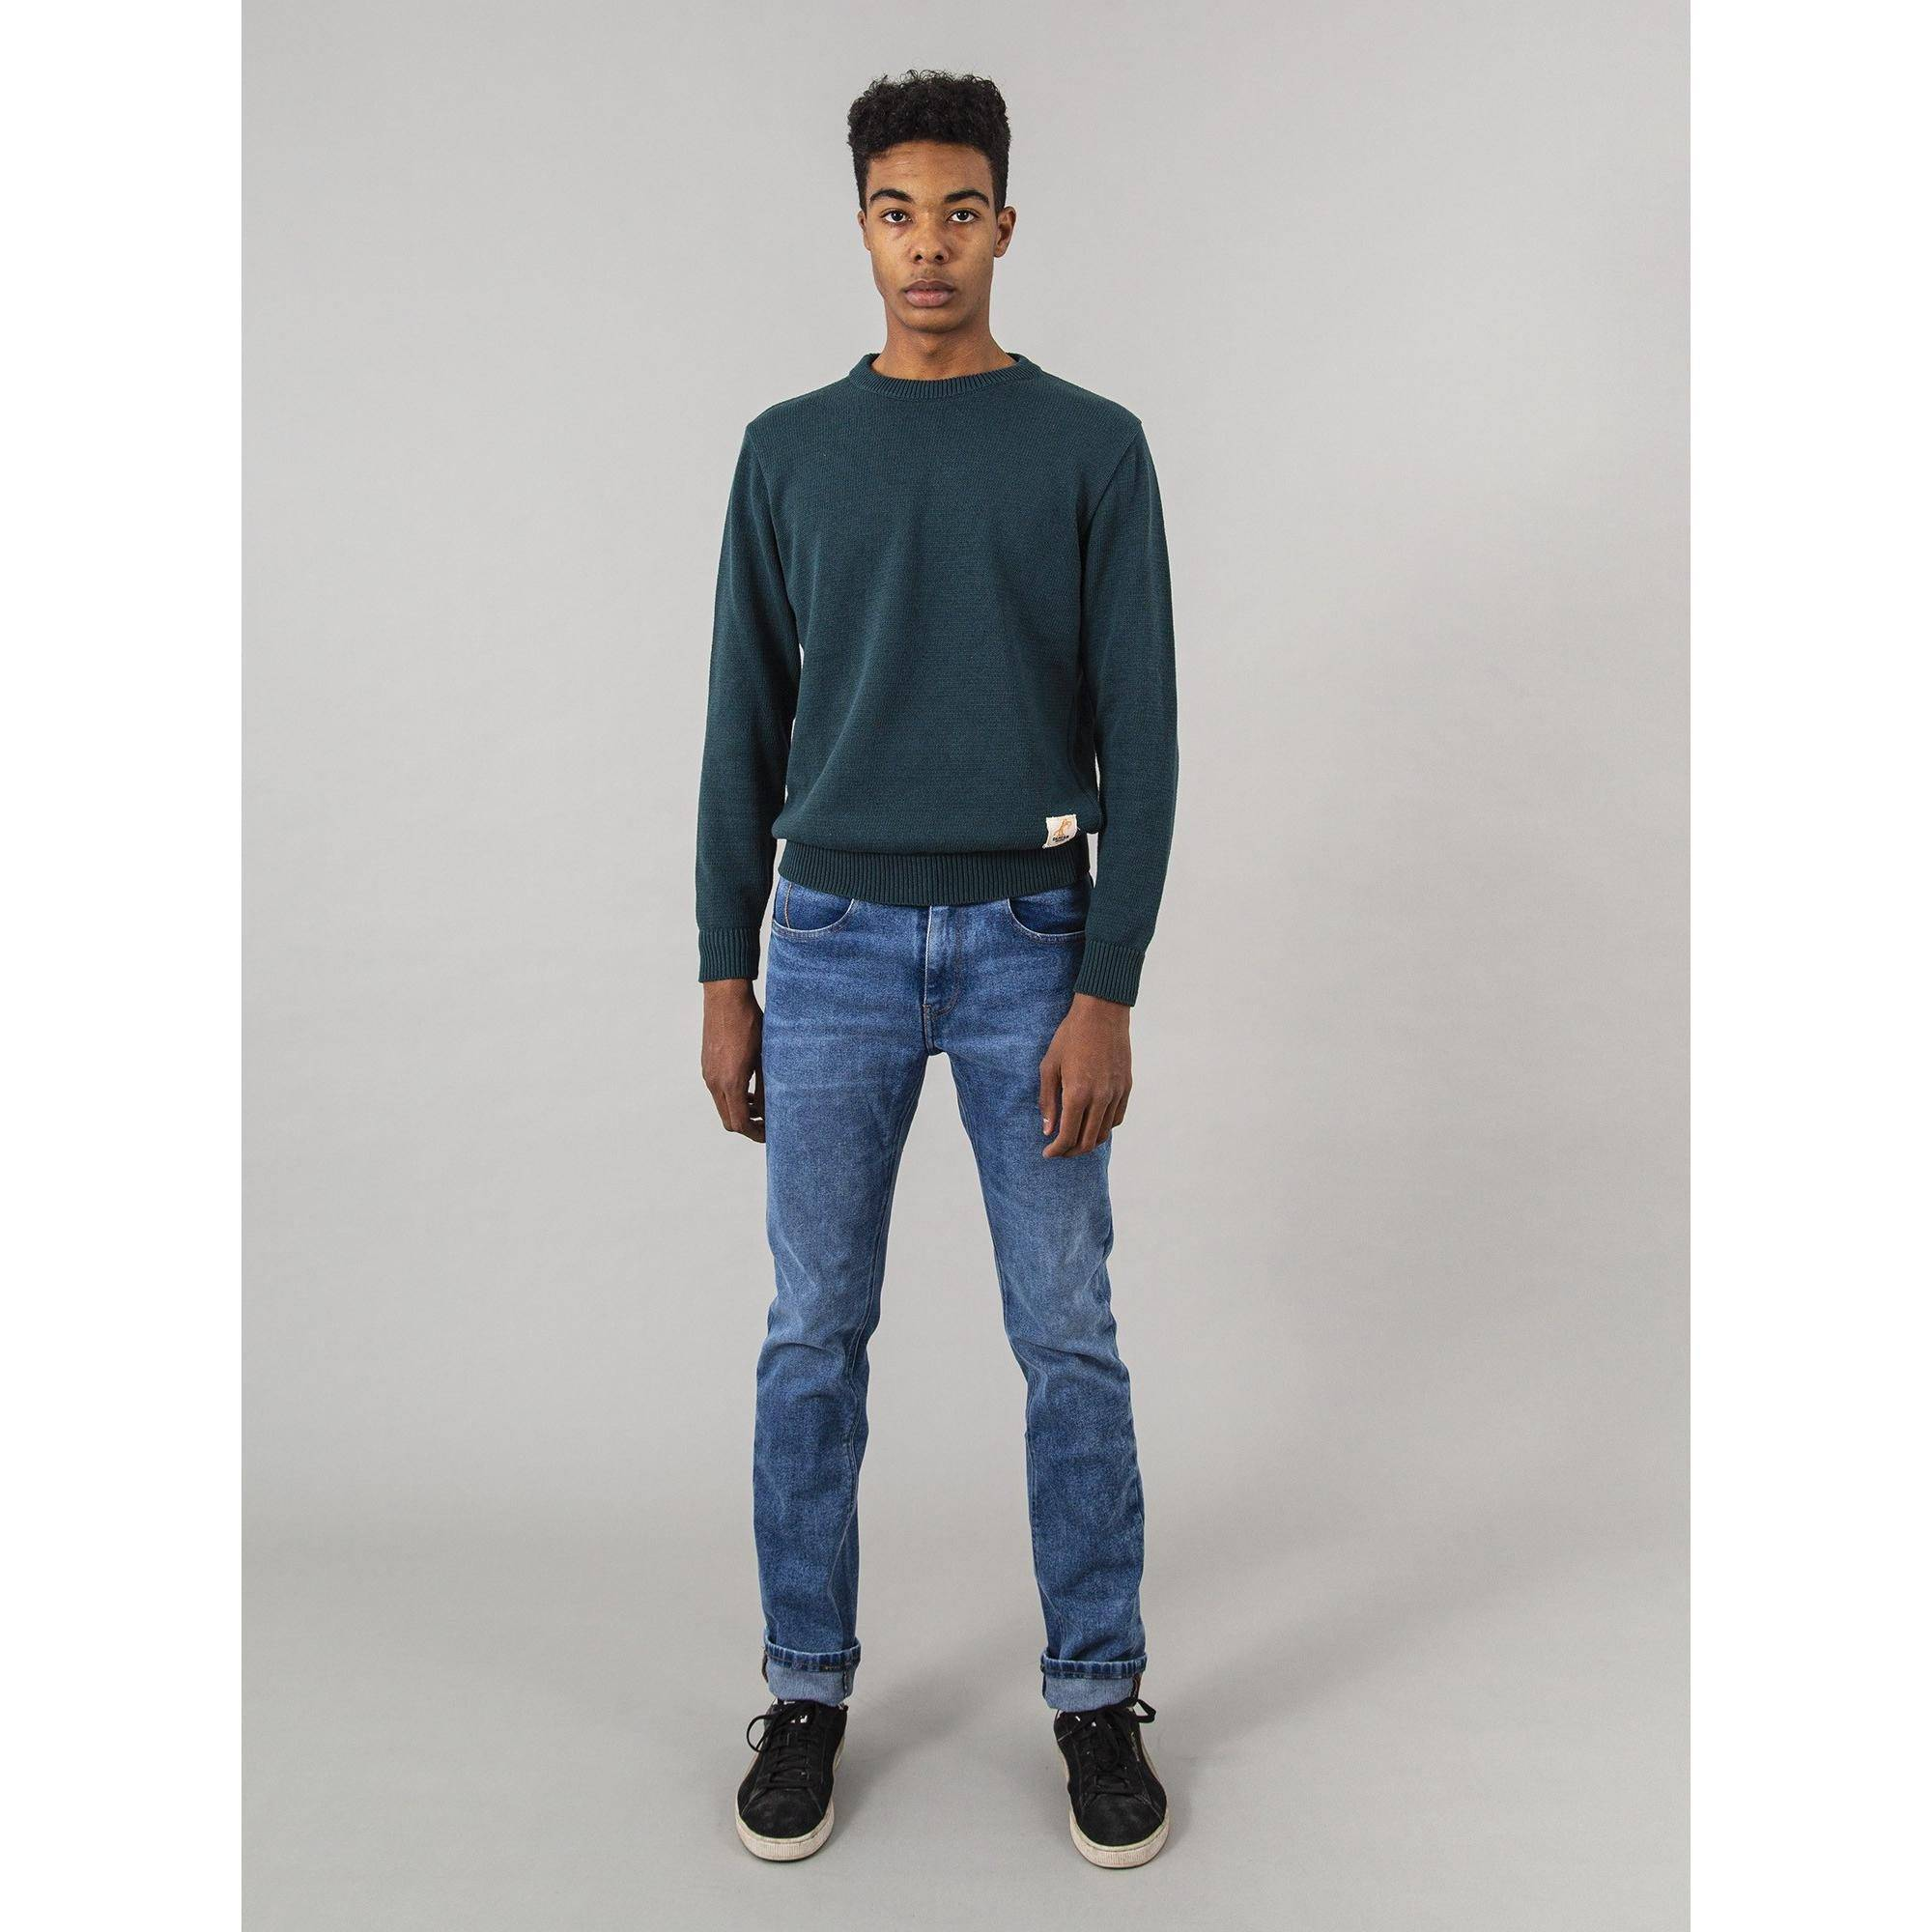 Capitán Denim Vaqueros RAY ECO RE-FORCED BLUE algodón reciclado Capitán Denim 50